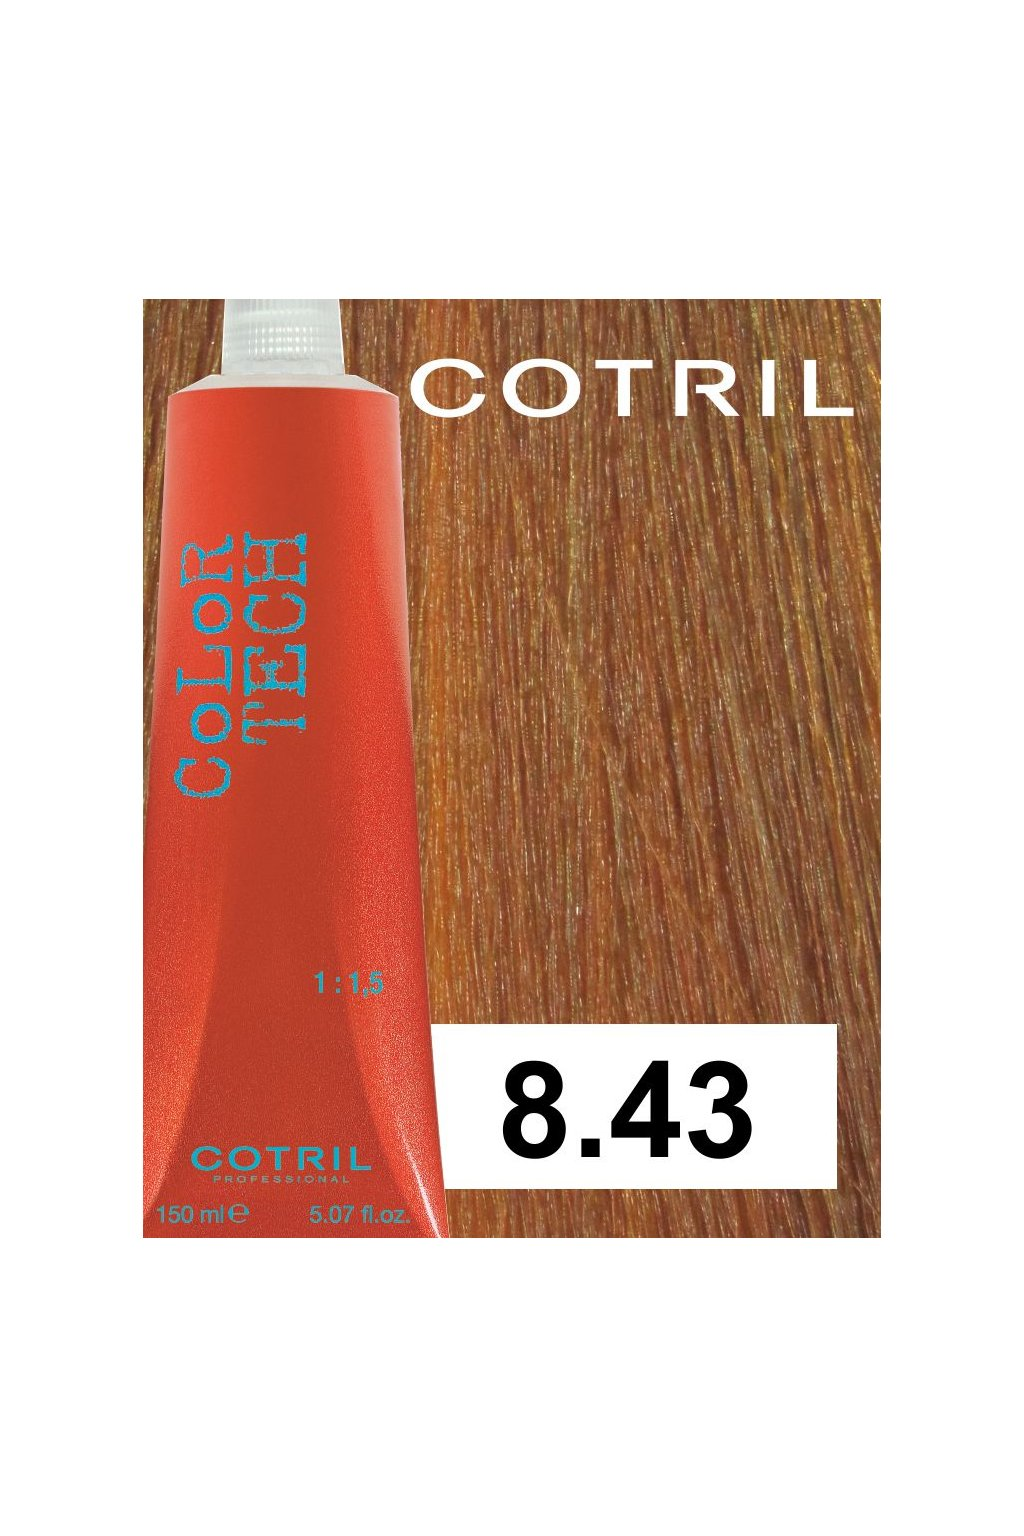 8 43 ct cotril